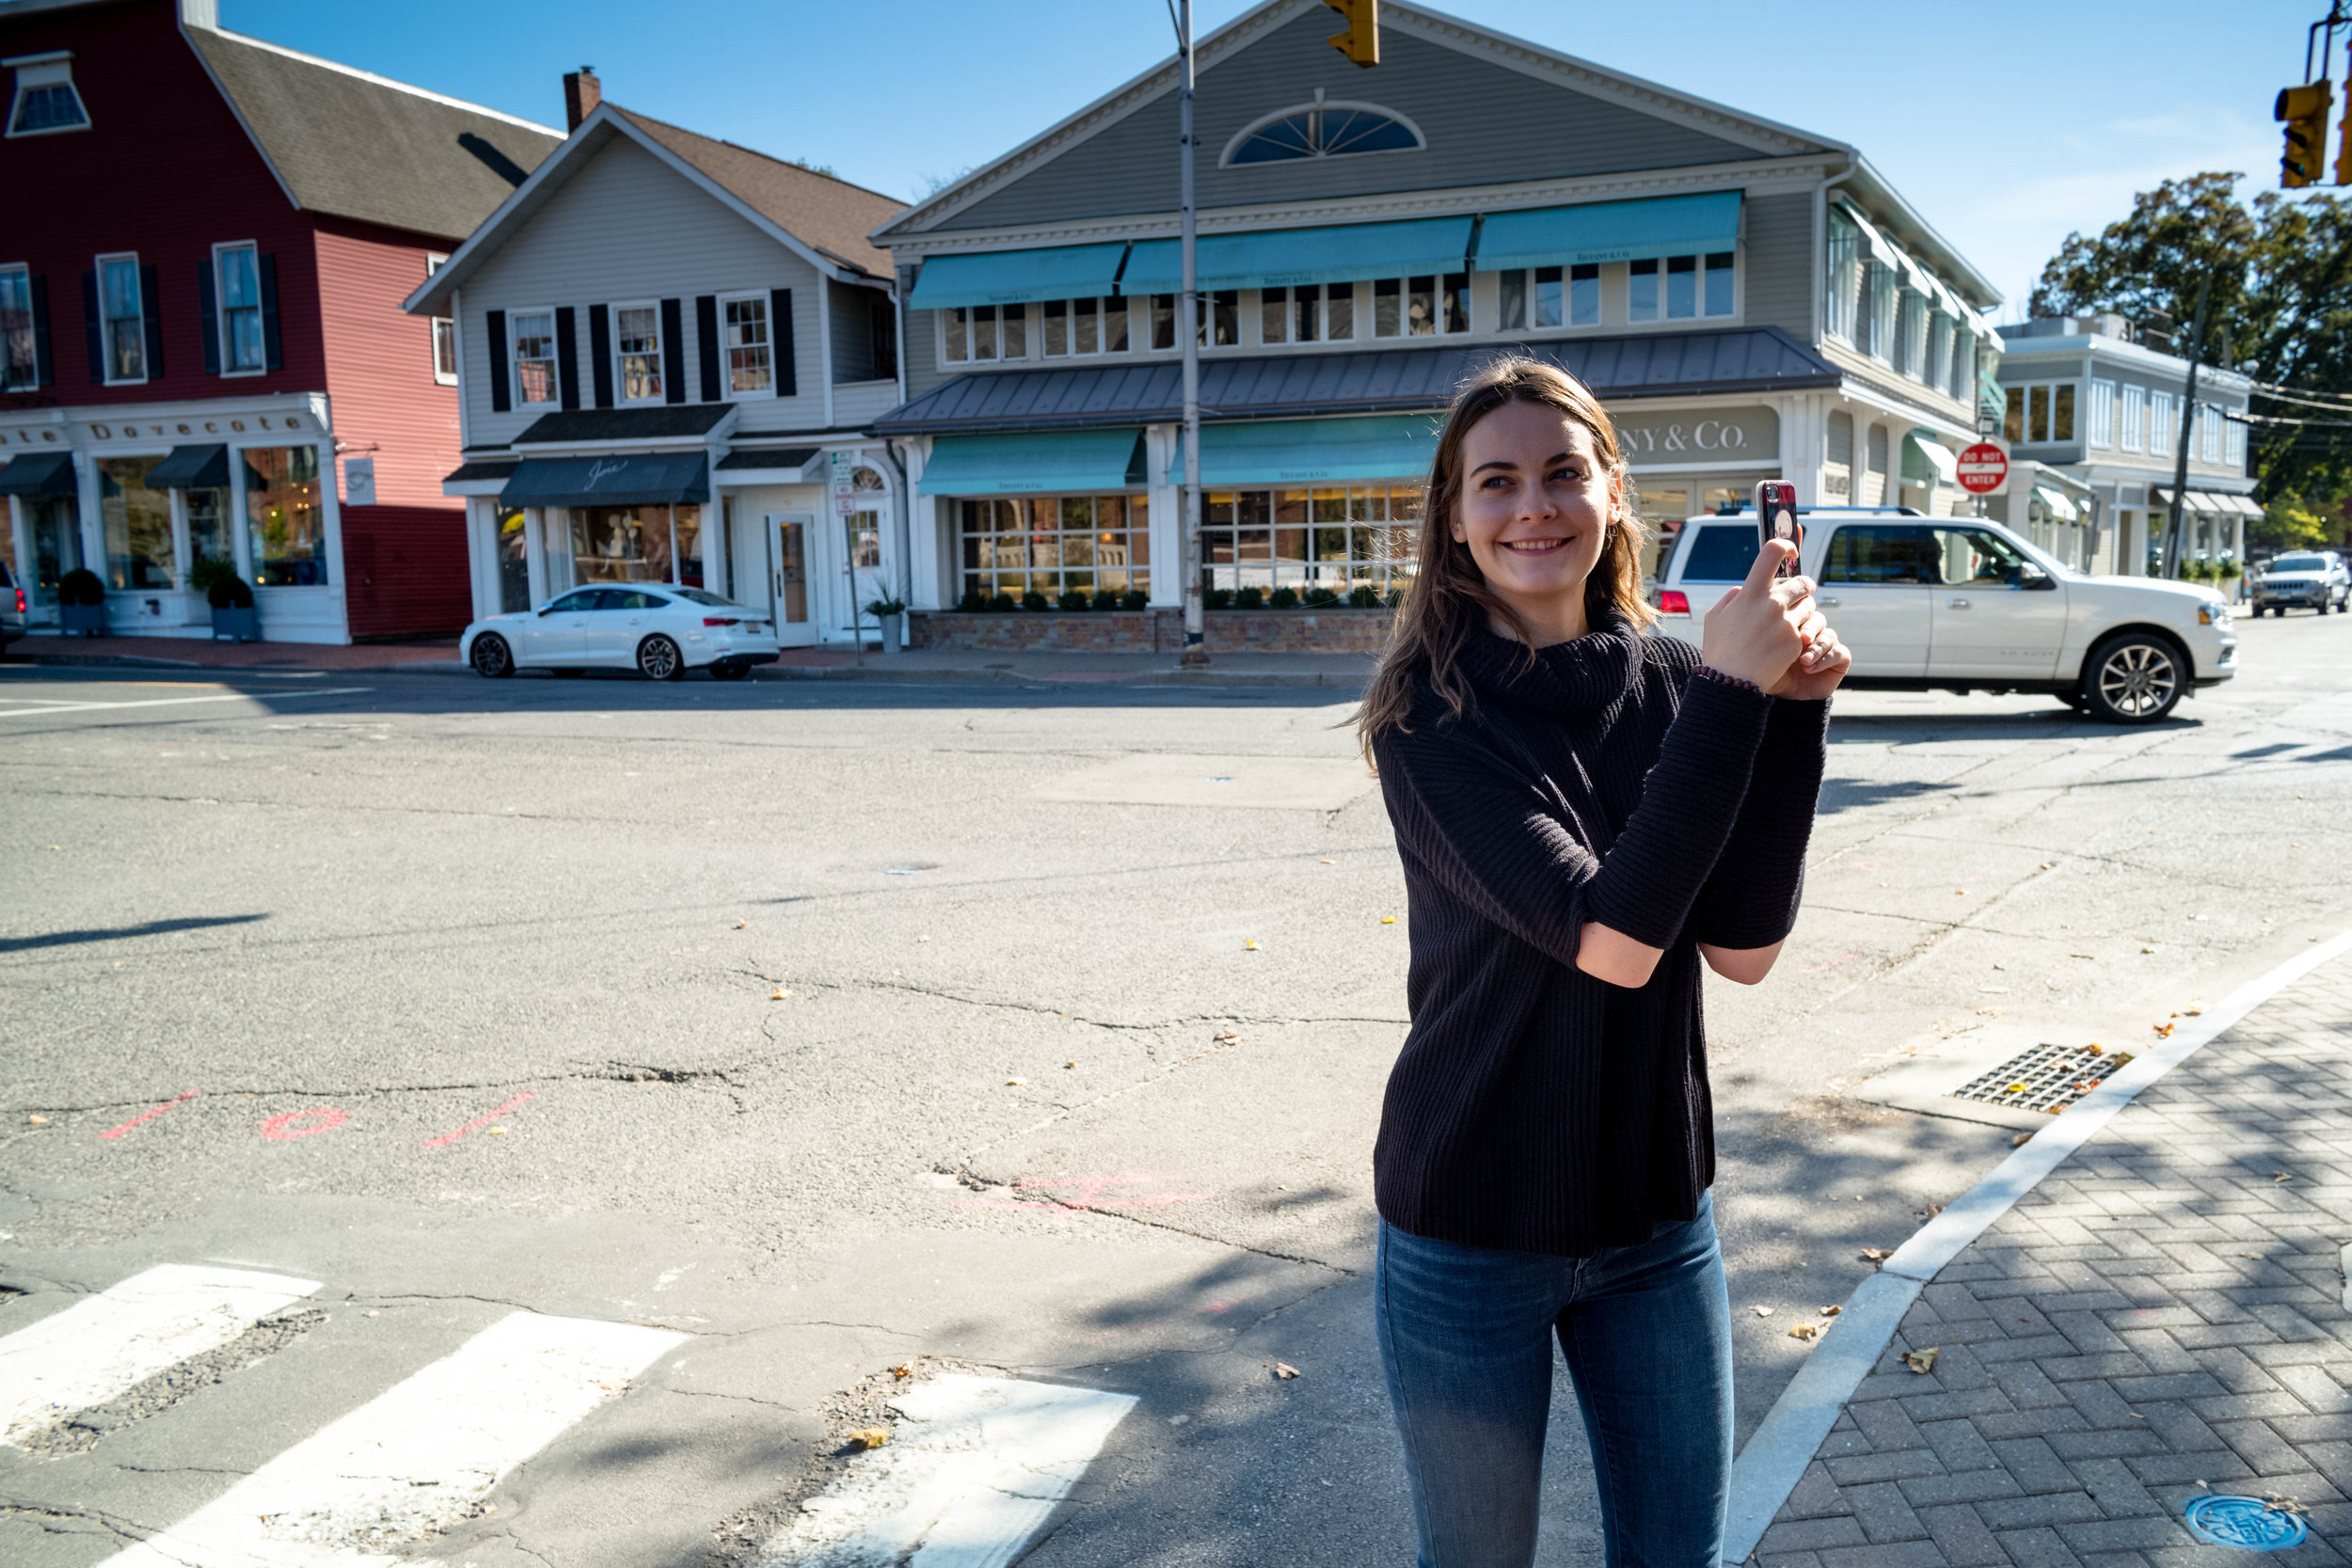 Taking a selfie on Post Road, Westport, Connecticut.